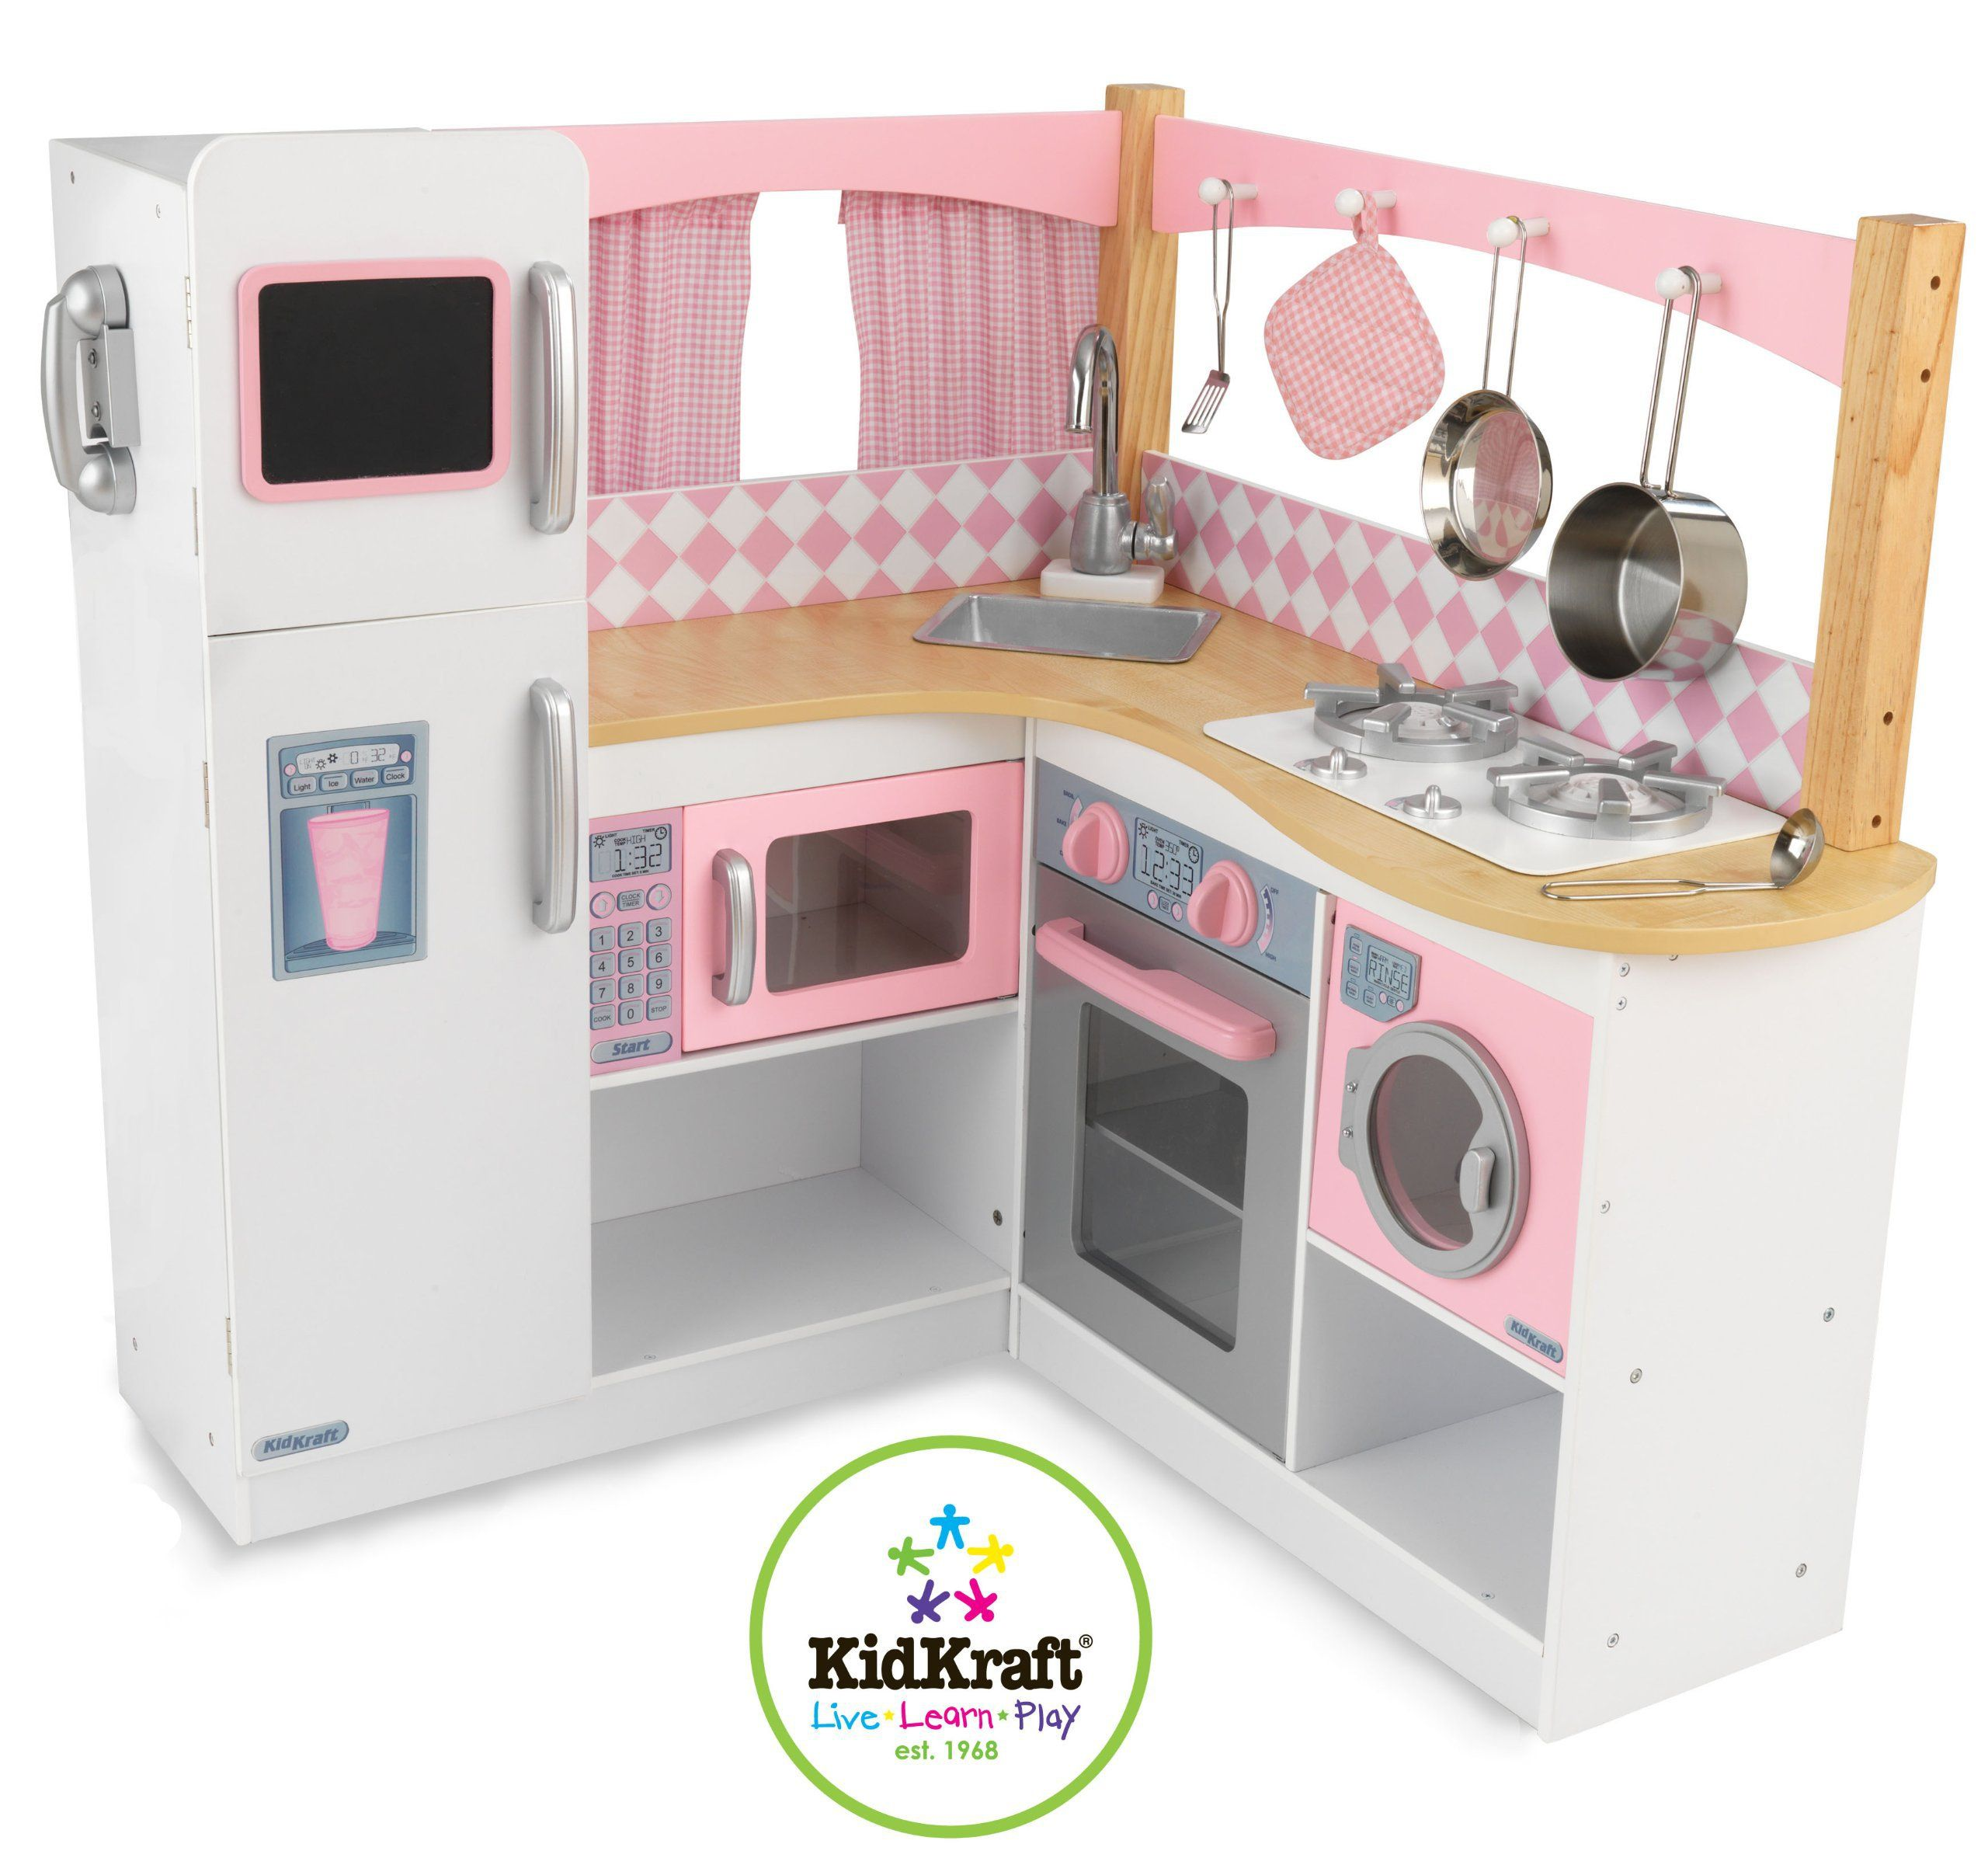 Kidkraft Kitchen Playsets Kids Play Kitchen Kidkraft Kitchen